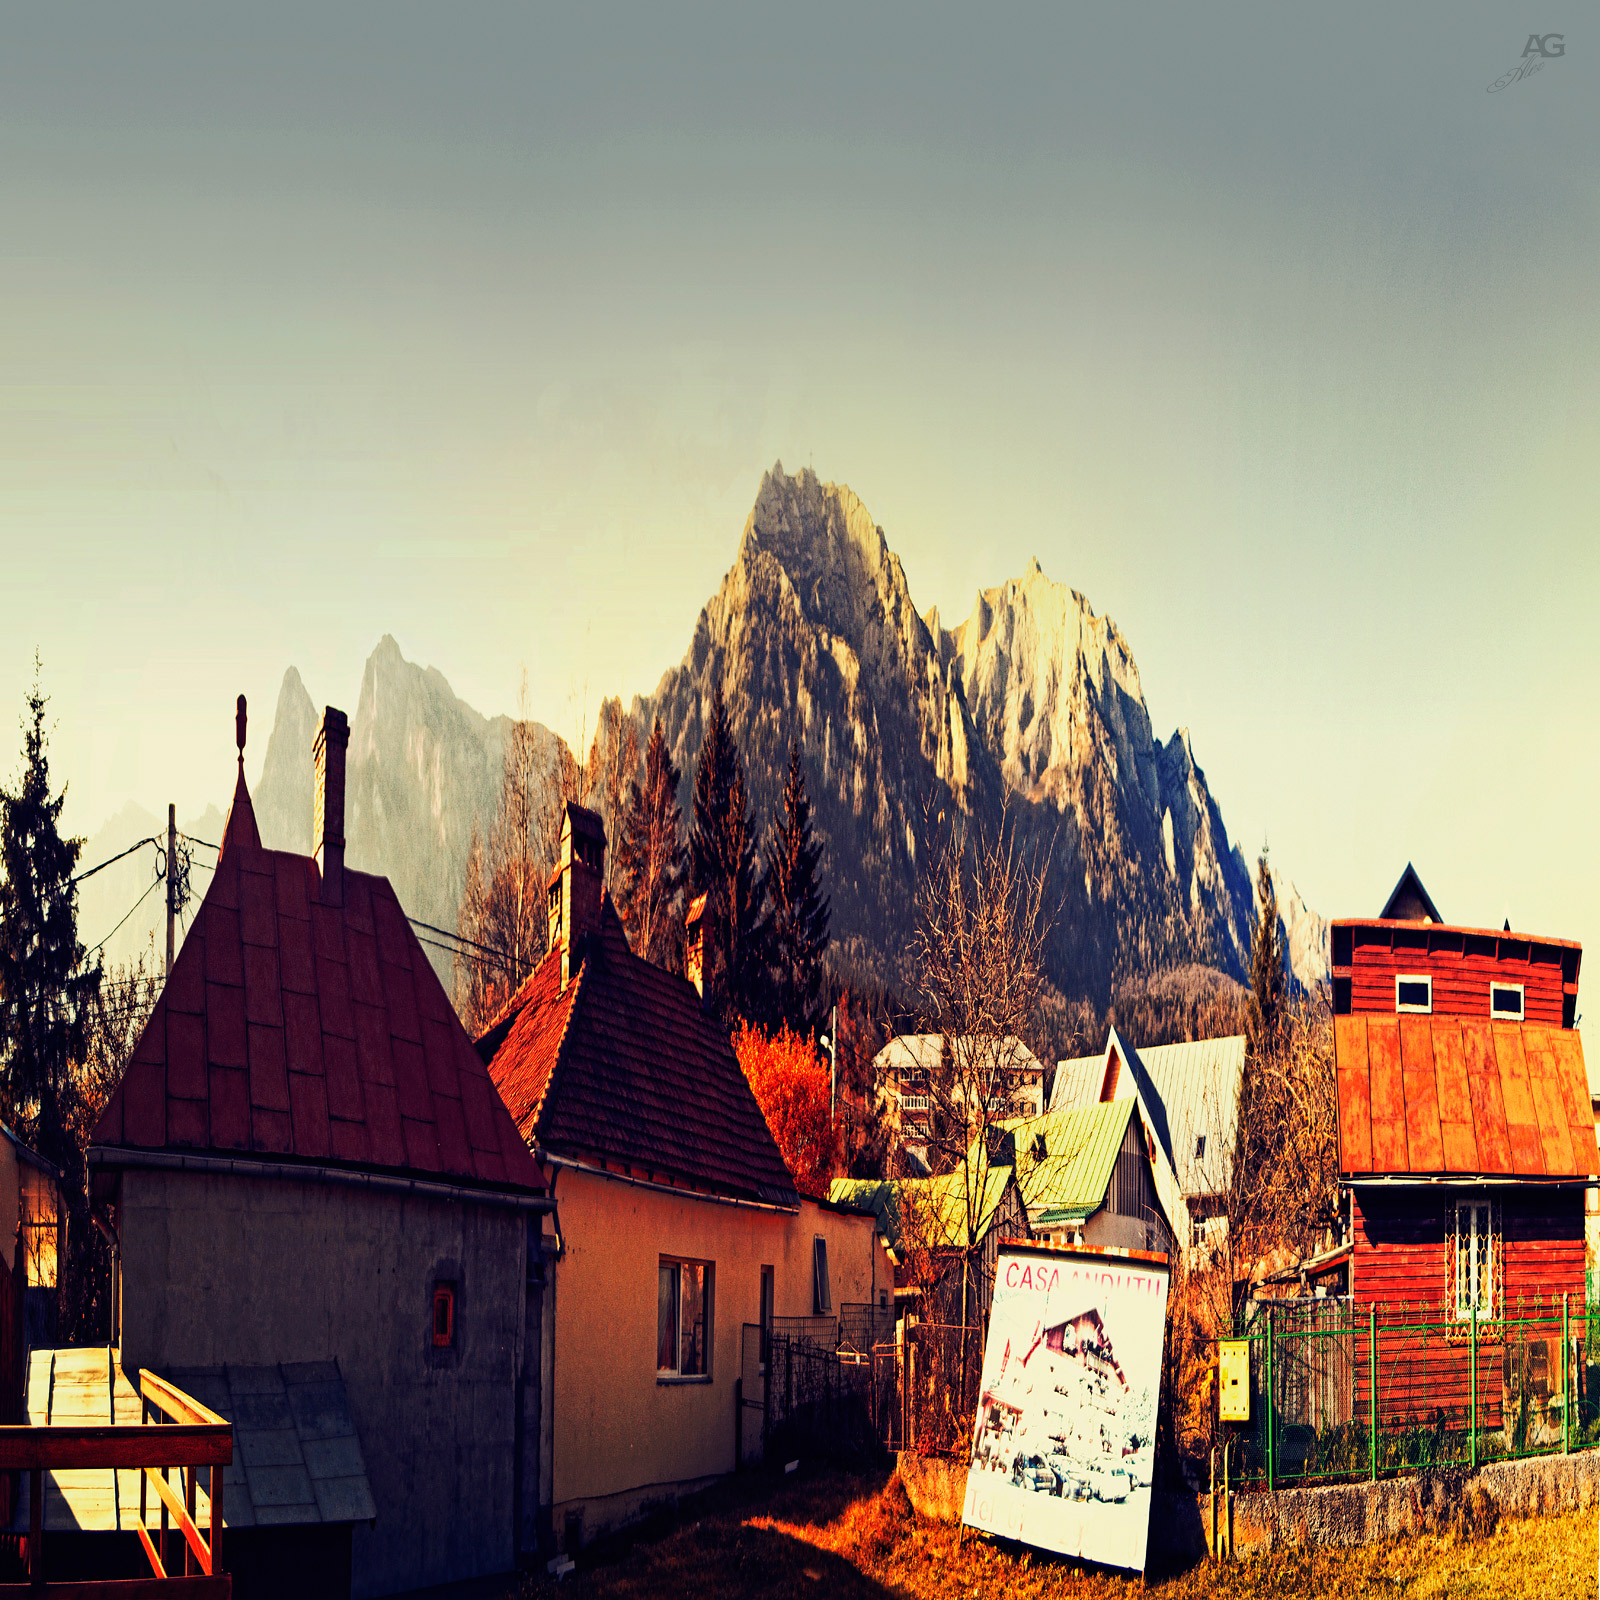 romania_mountains_villageUnderTheMount_squished_1600